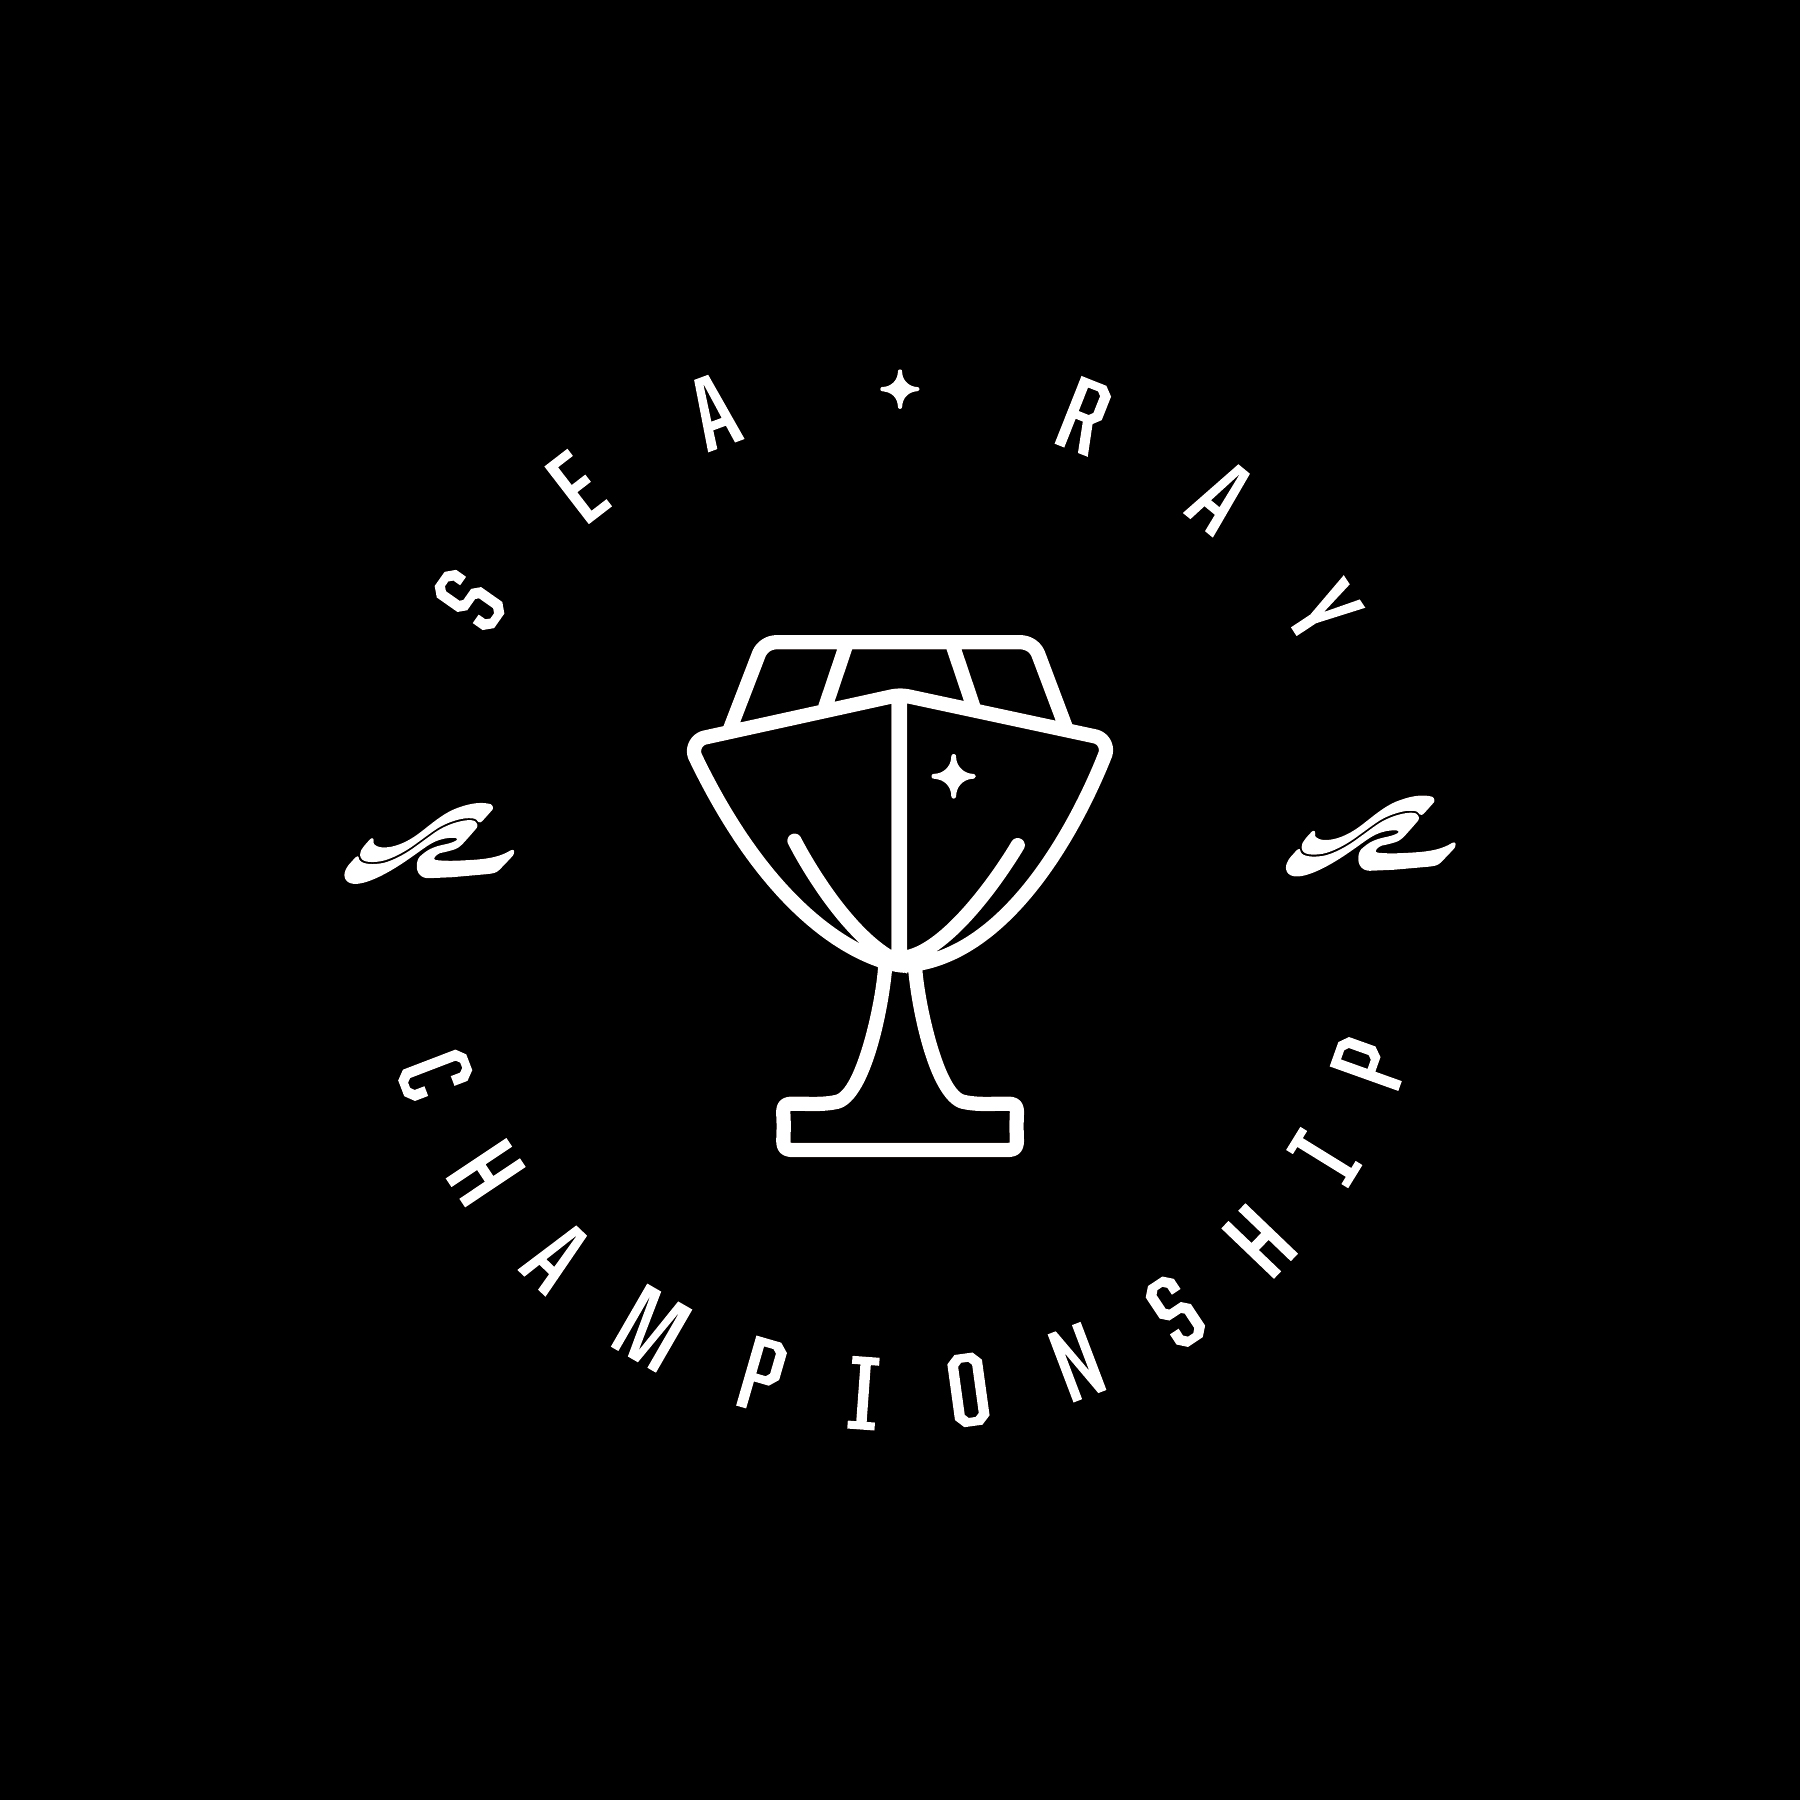 SeaRay_ChampionShip_Logo.jpg